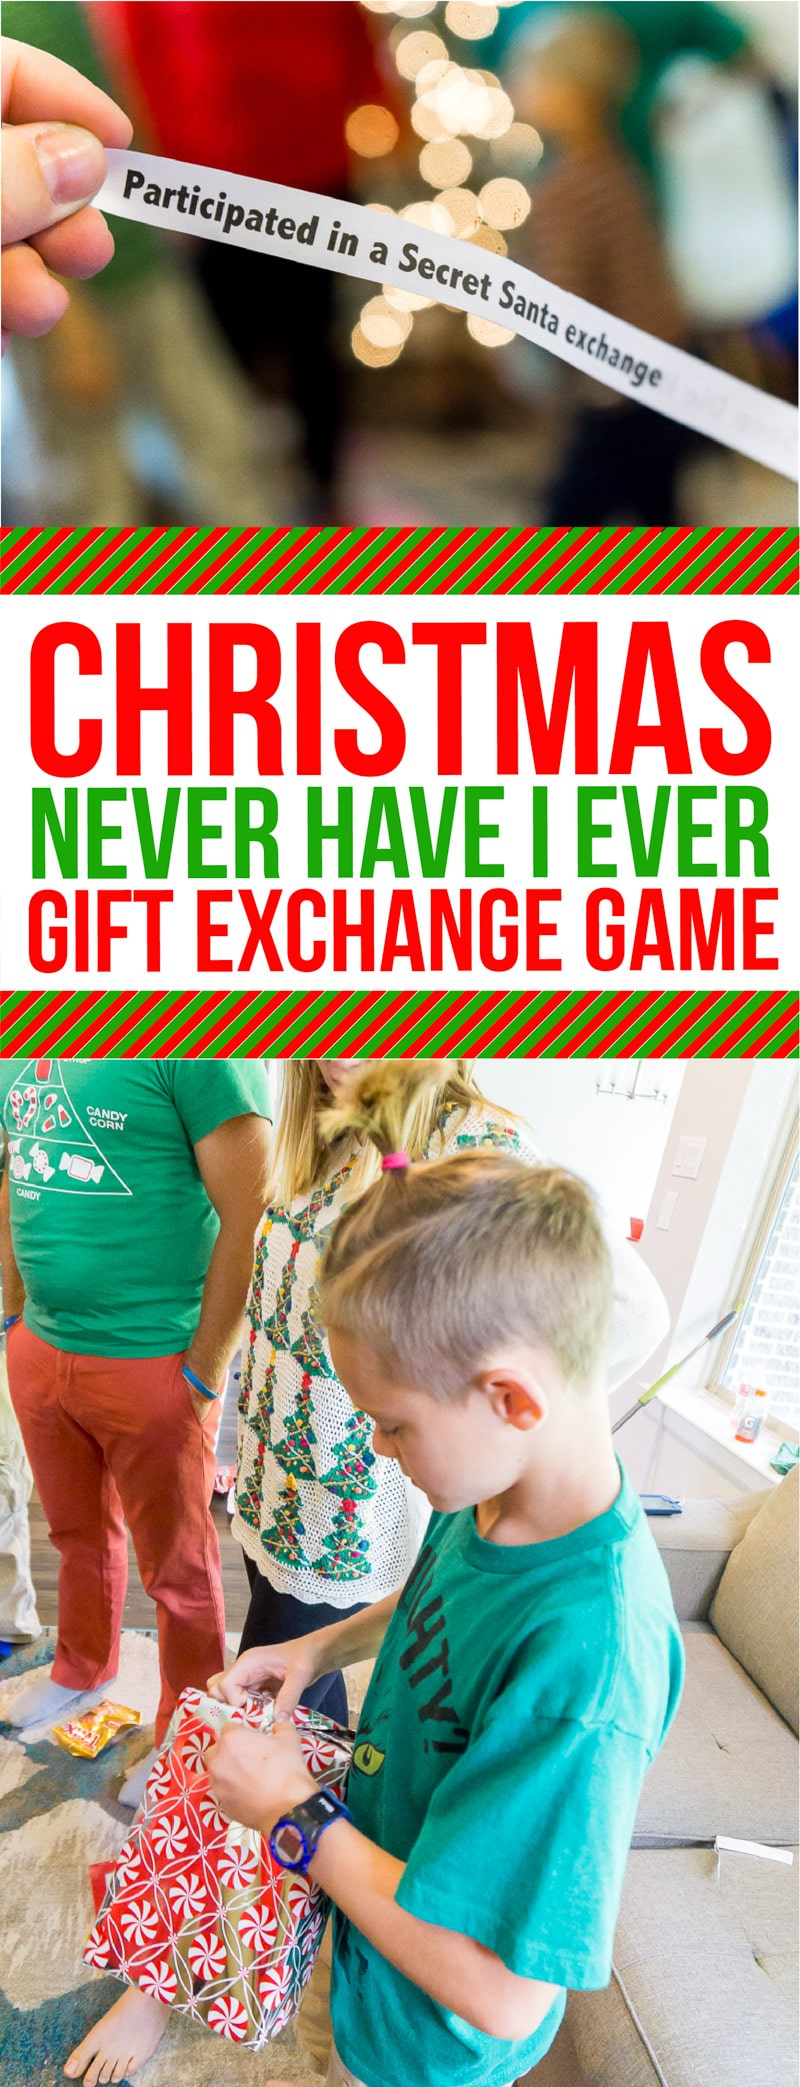 This Christmas Never Have I Ever game is one of the most funny gift games we've ever played! Perfect if you're looking for something for adults, teens, or even for kids! With a printable list of over 50 clean Never Have I Ever questions, it's one of those ideas you just have to try! via @playpartyplan